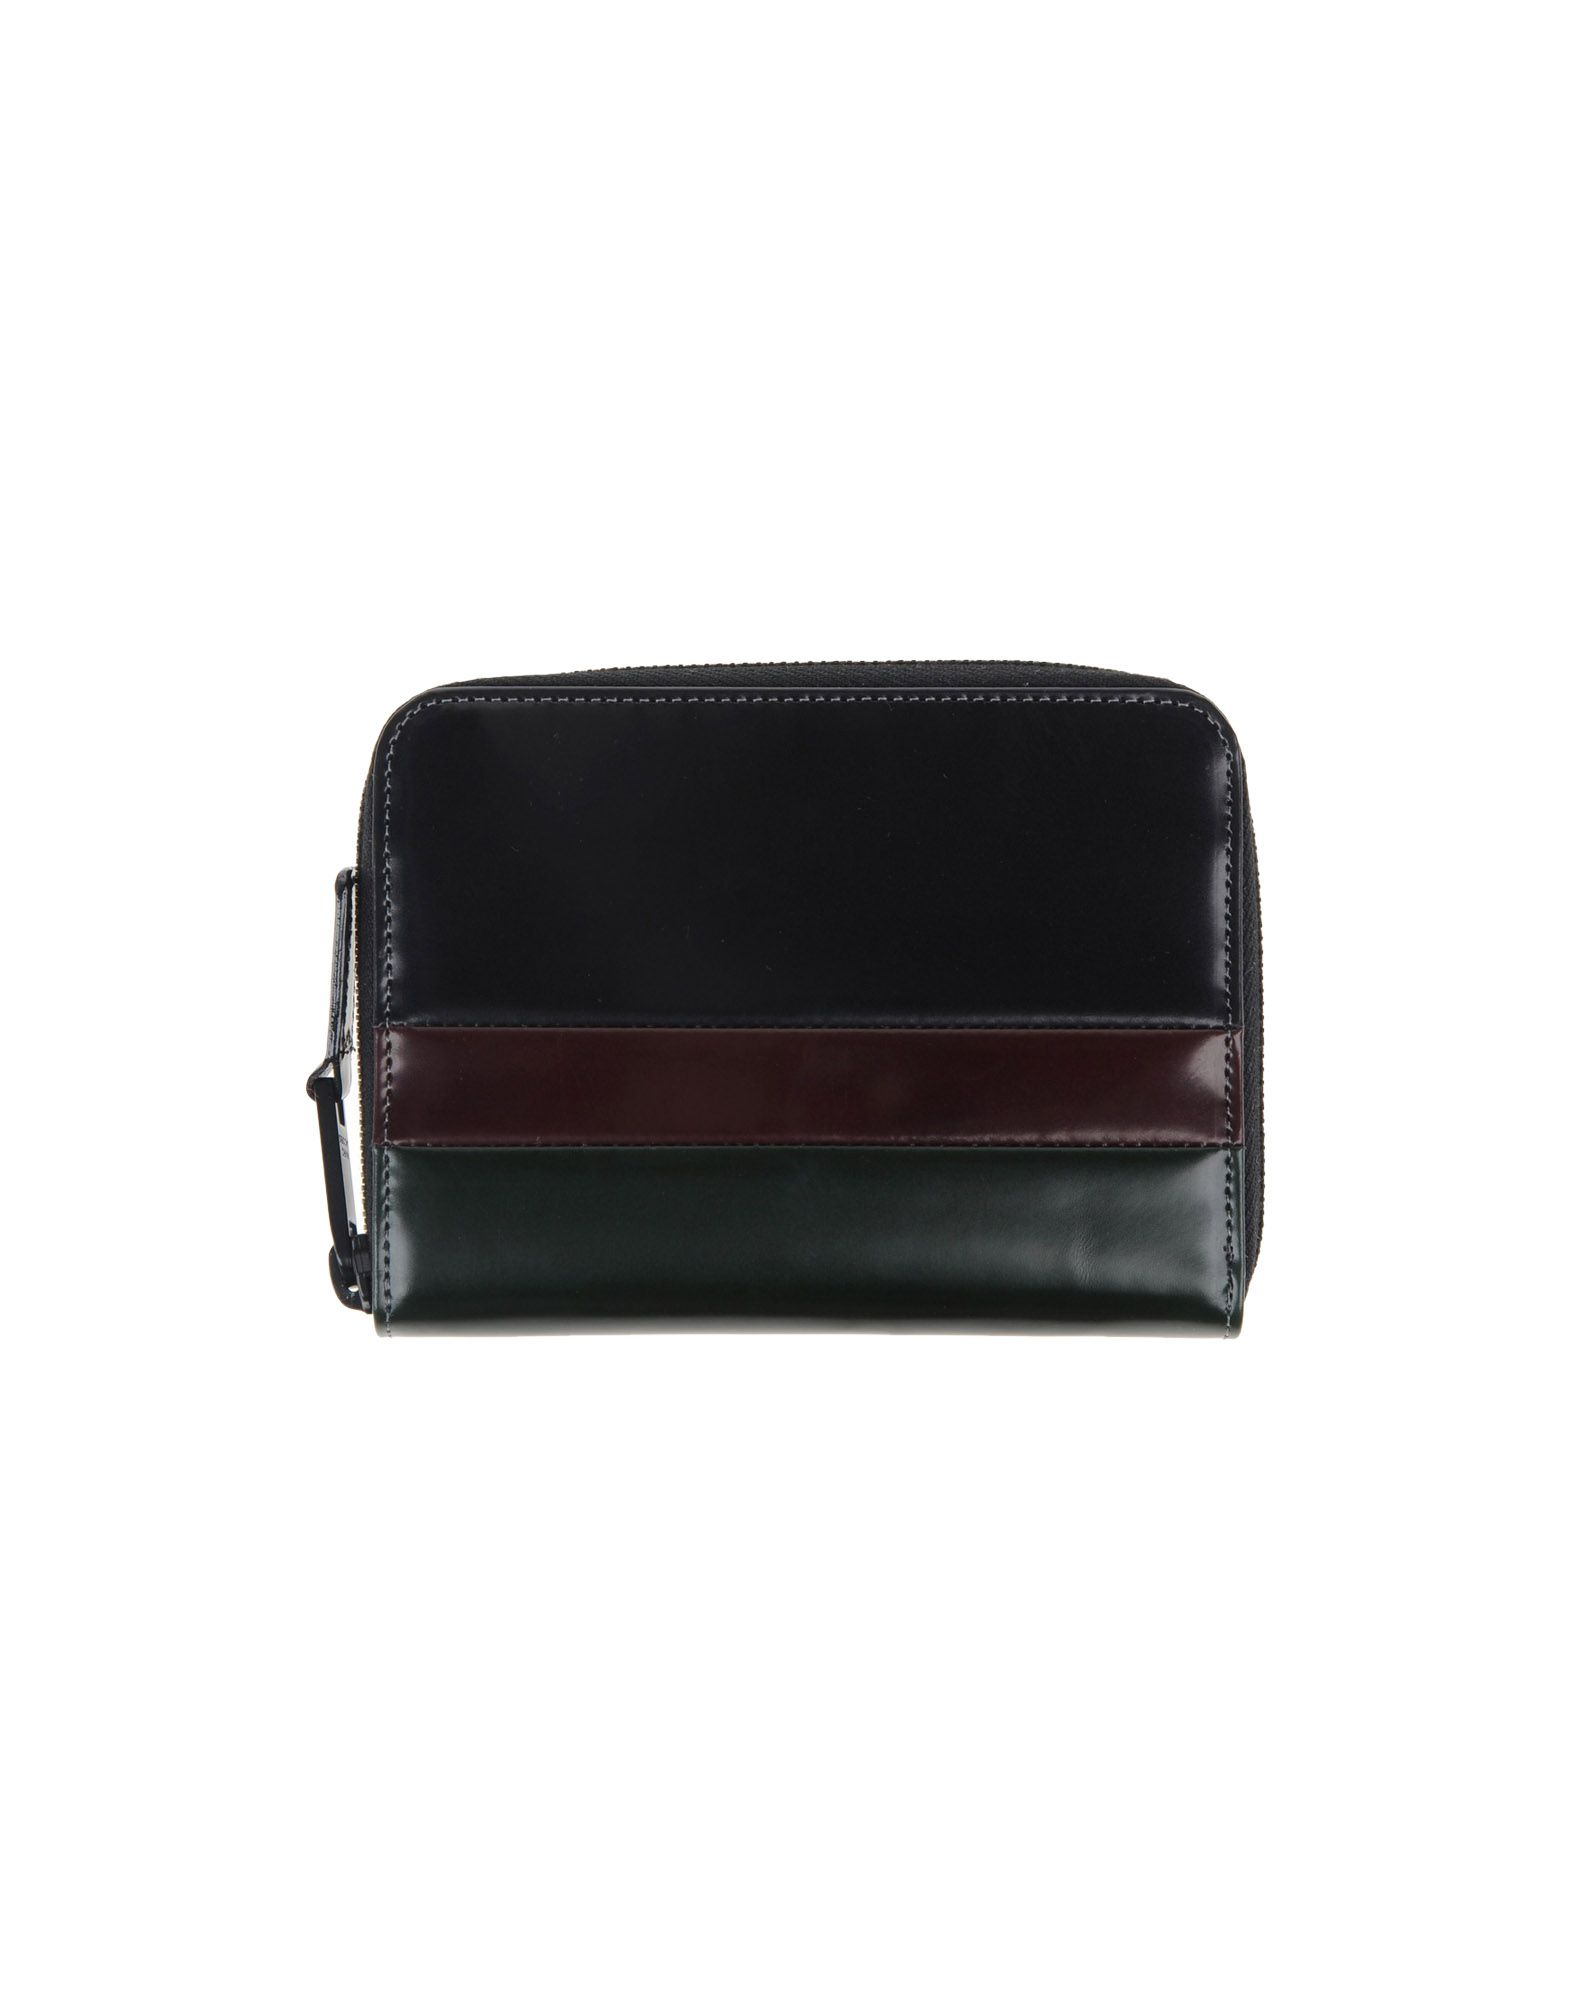 marc jacobs  marc jacobs wallets